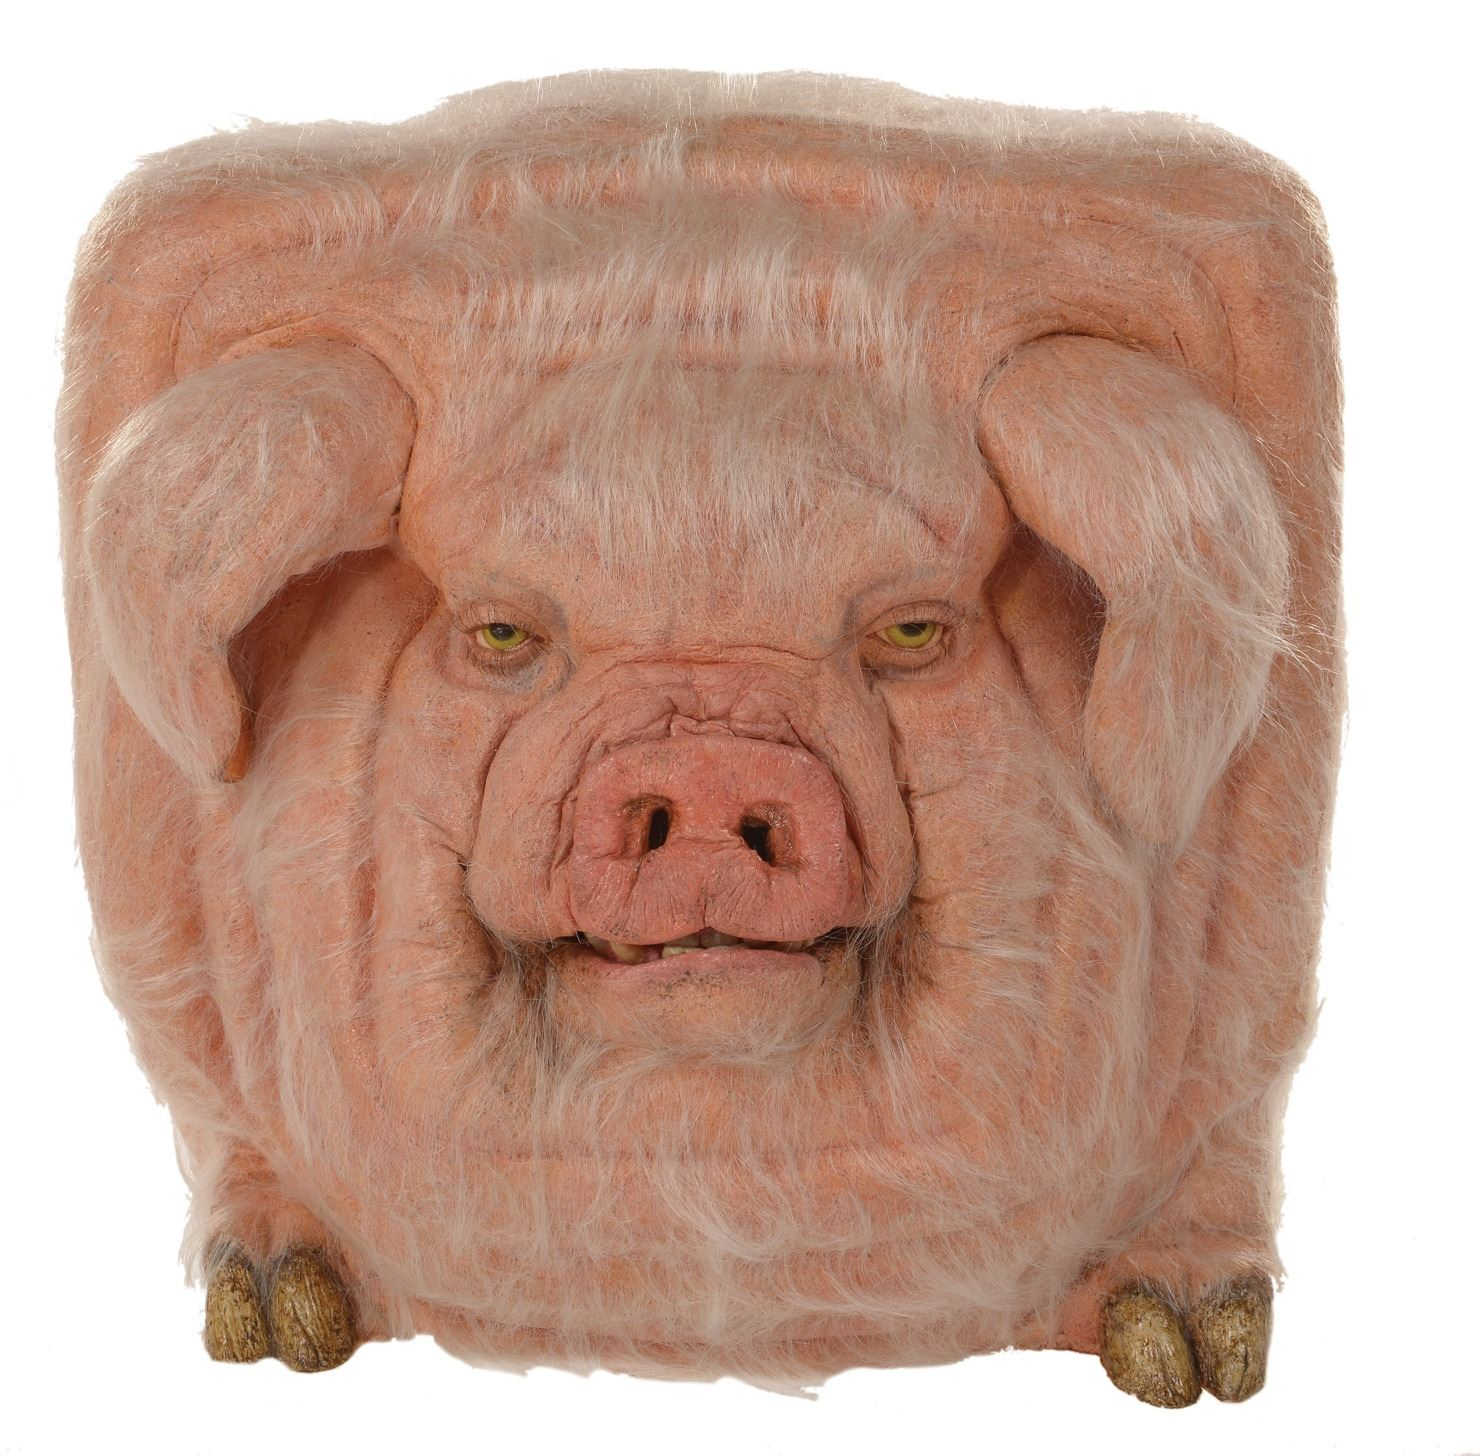 Square pig from Space Truckers